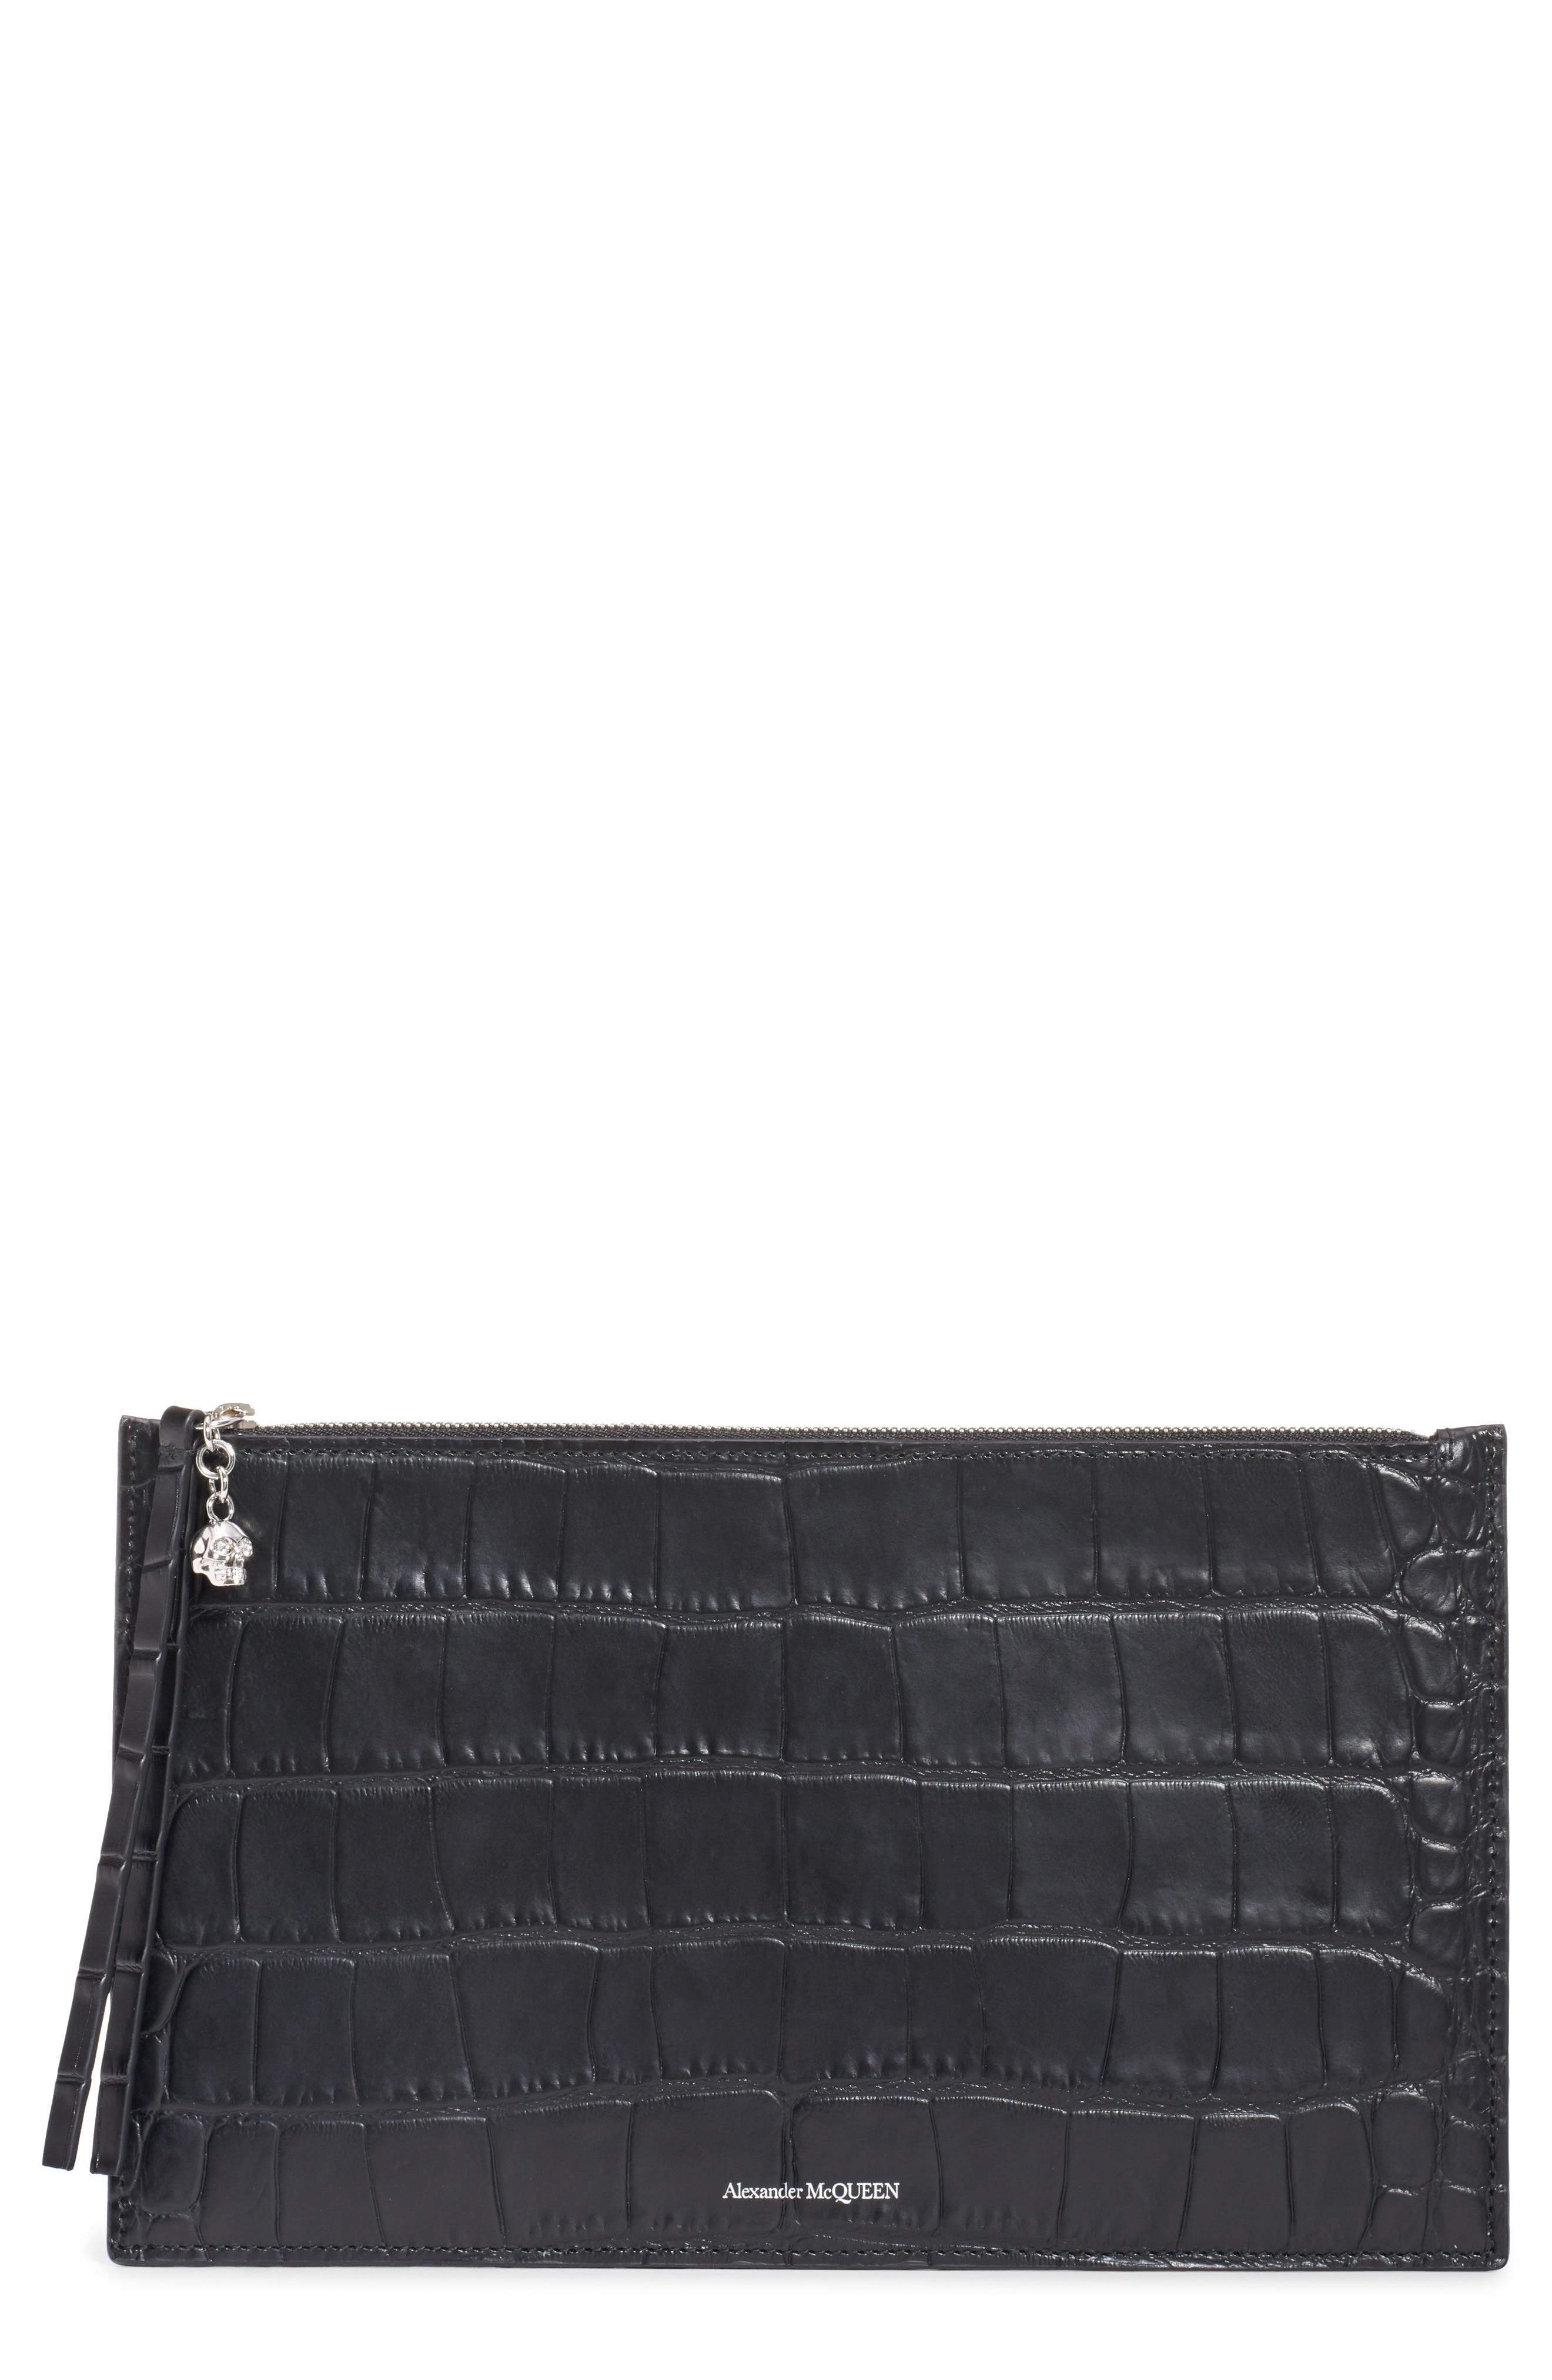 ALEXANDER MCQUEEN Croc Embossed Leather Pouch, Main, color, BLACK